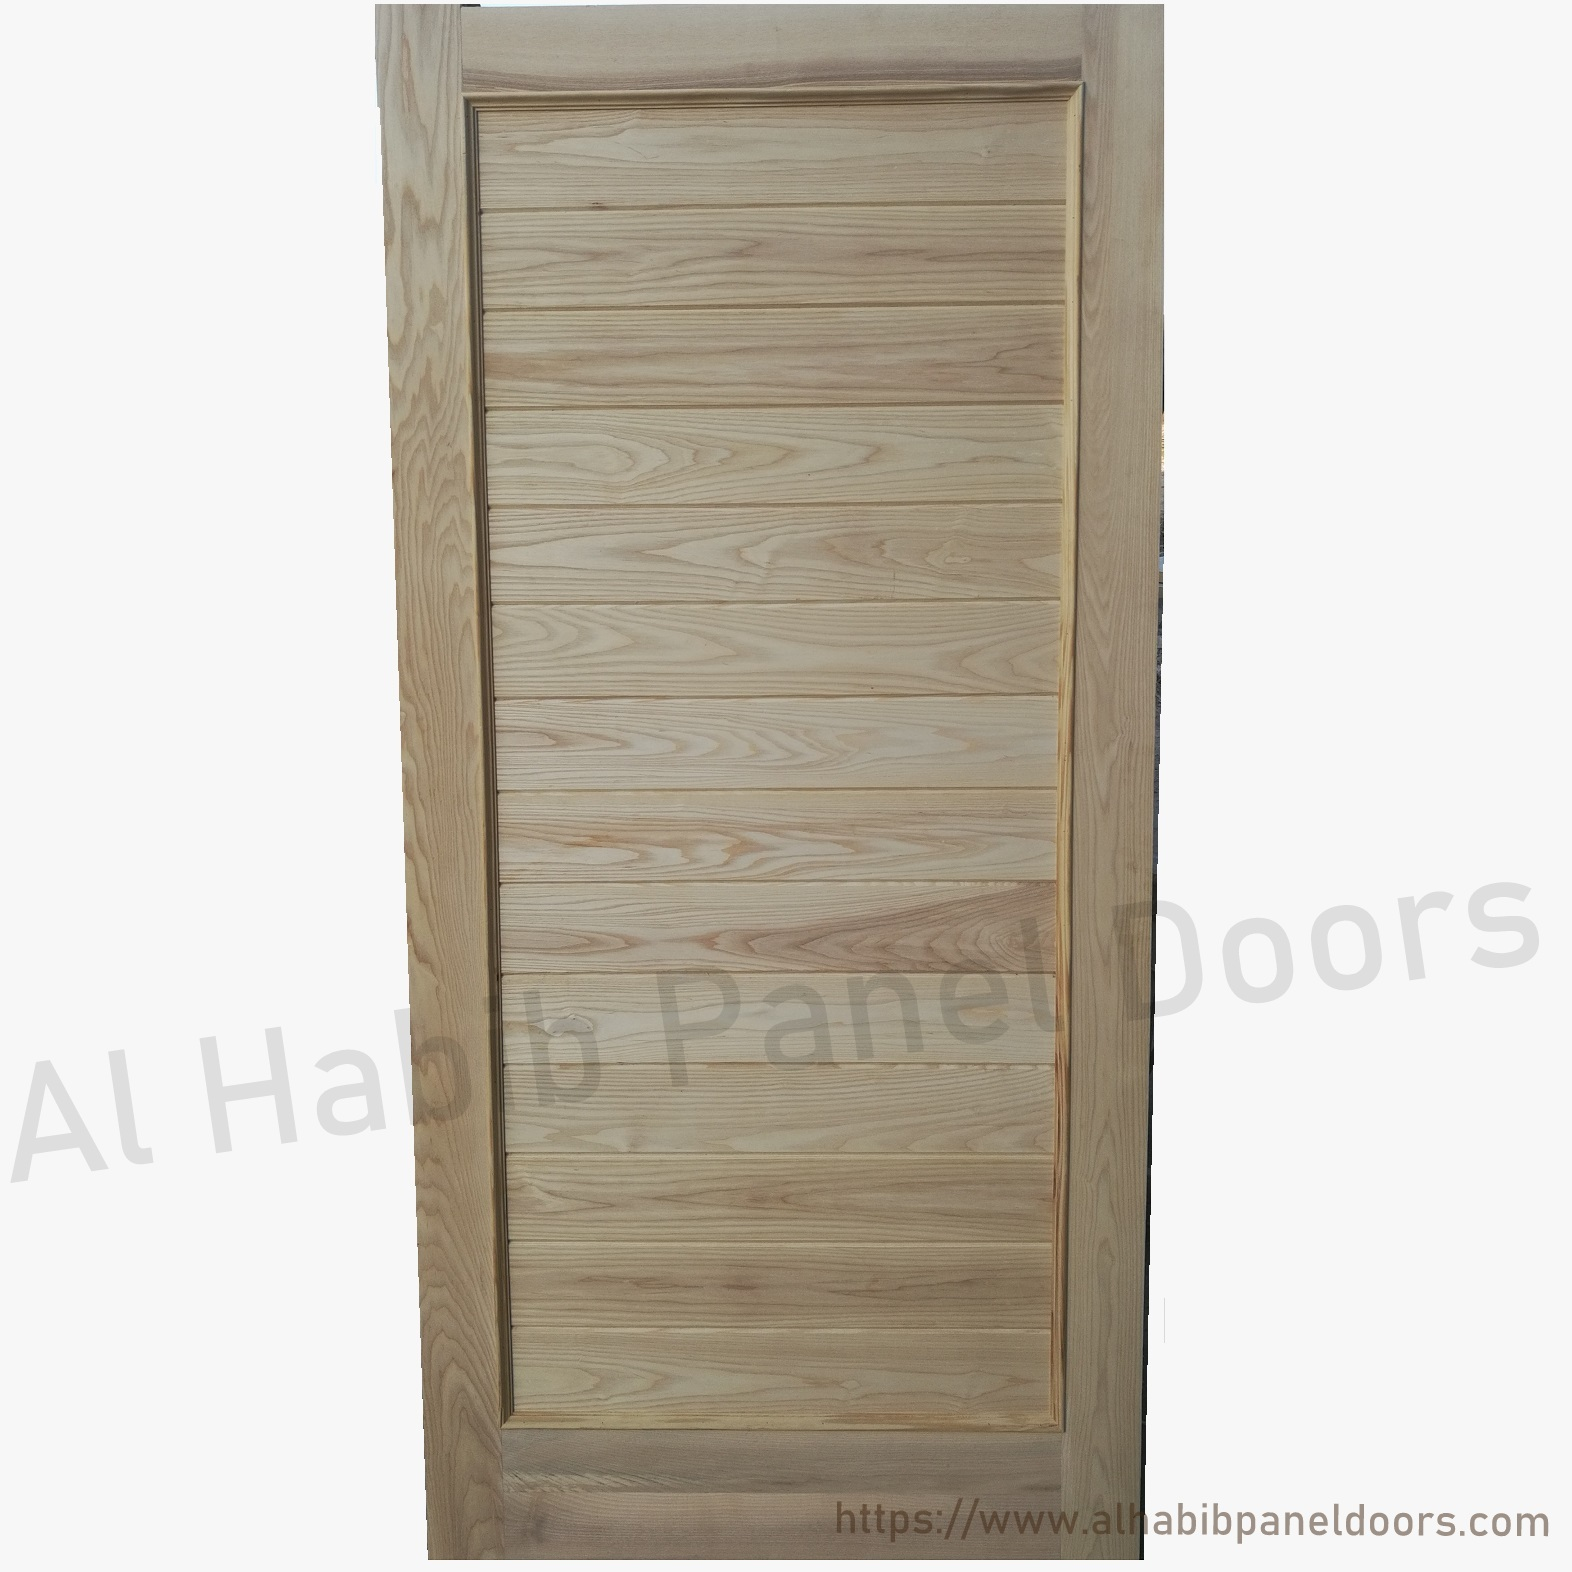 Ash wood door design hpd423 solid wood doors al habib for Wood door design latest